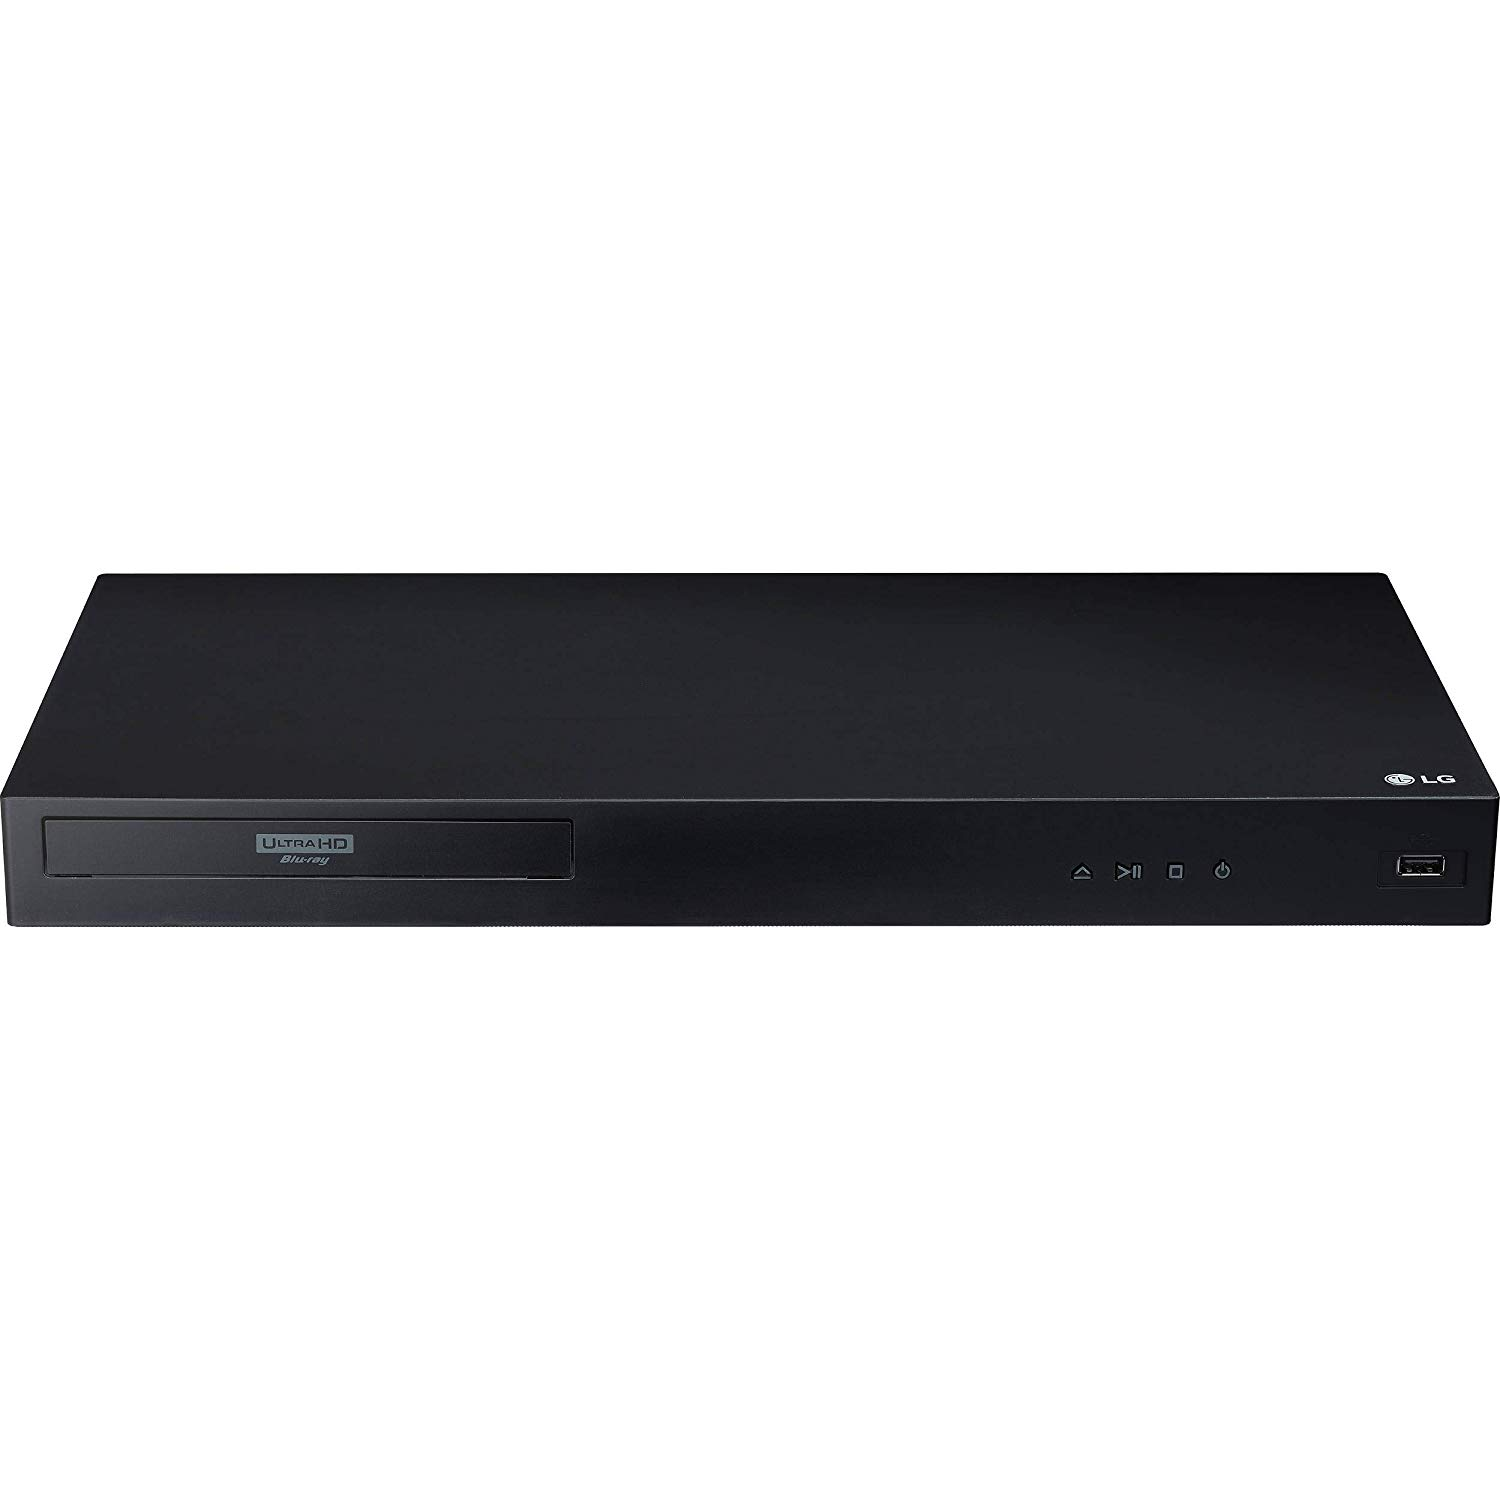 LG 3D Ultra High Definition WiFi Blu-Ray 4K Player